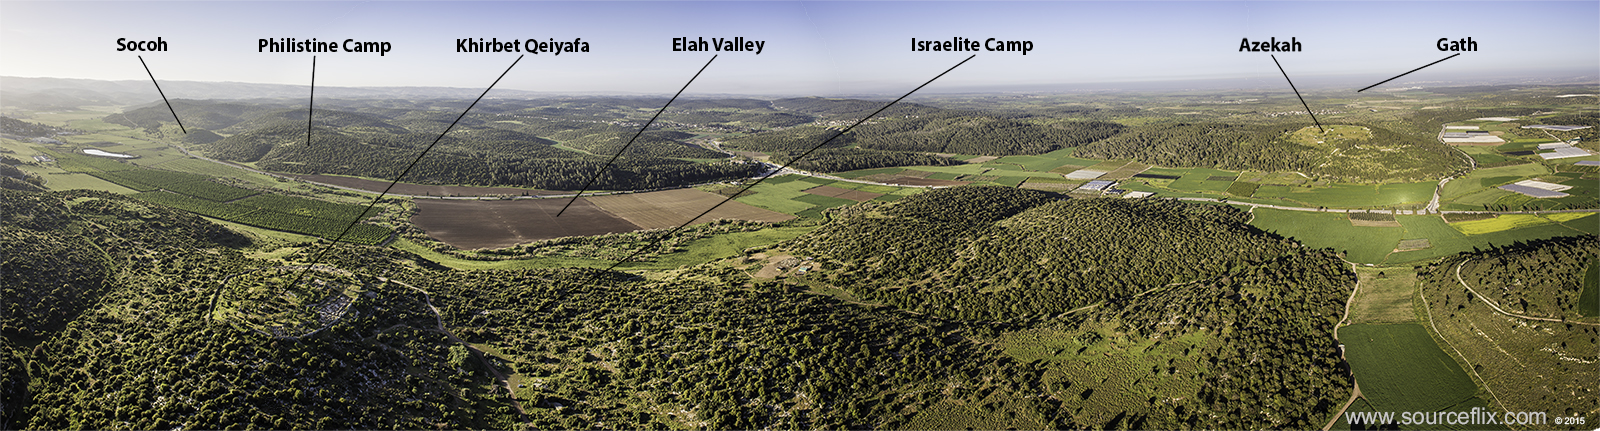 elah-valley-panoramic-1600-with-copyright-and-website-full-res.jpg